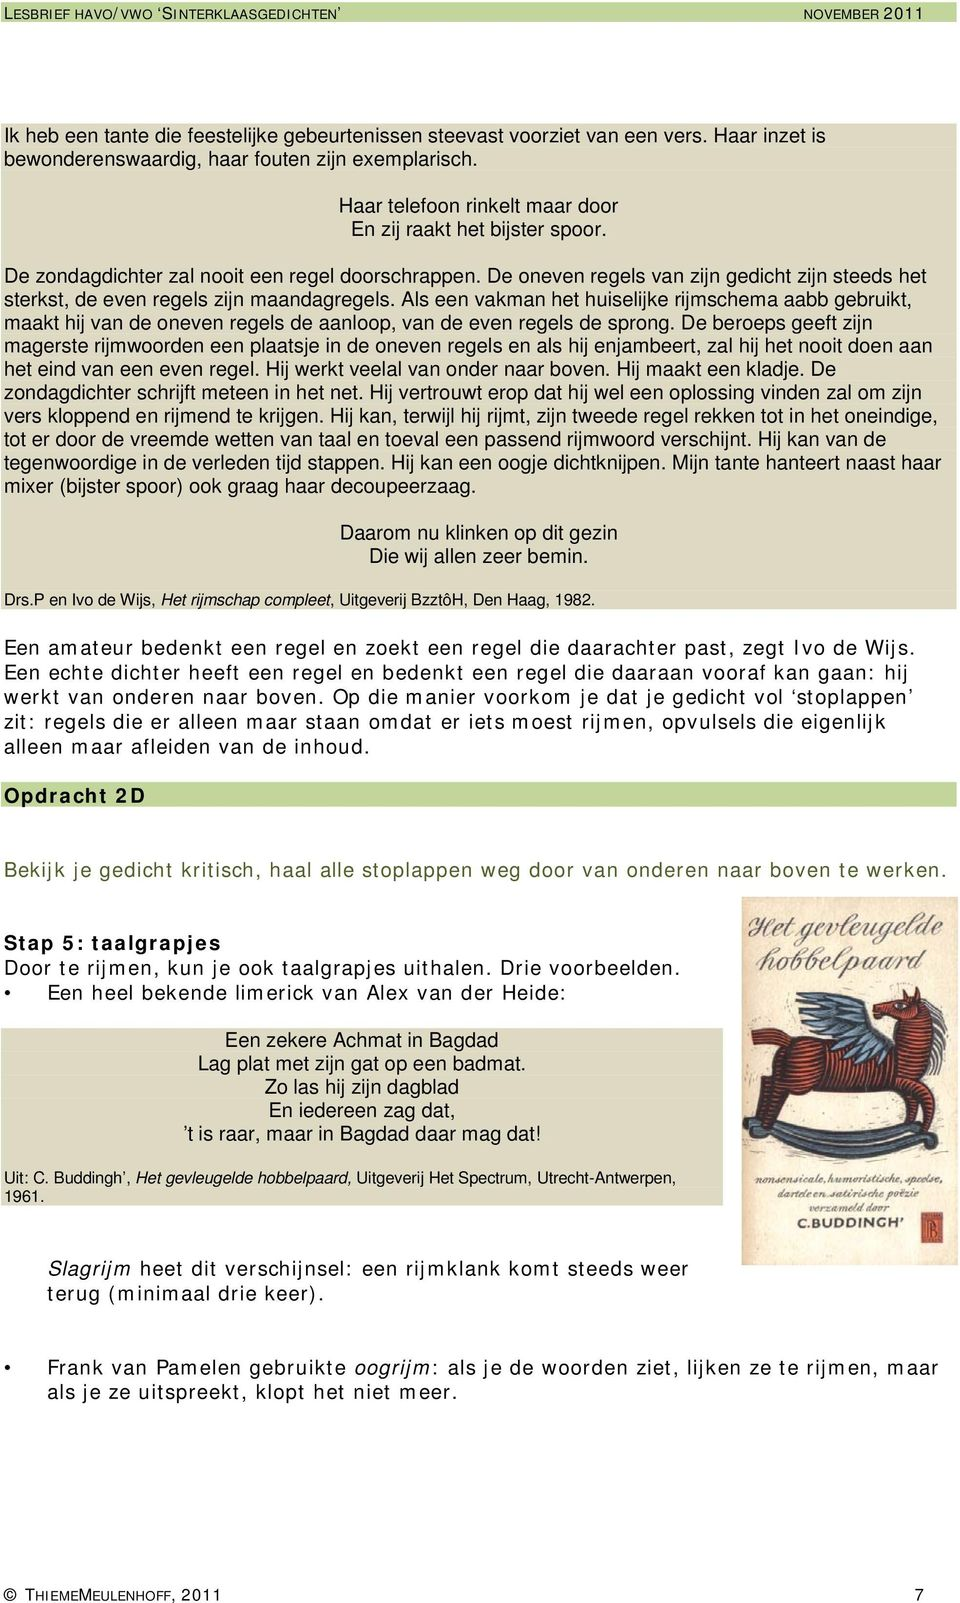 Sinterklaasgedichten Pdf Gratis Download